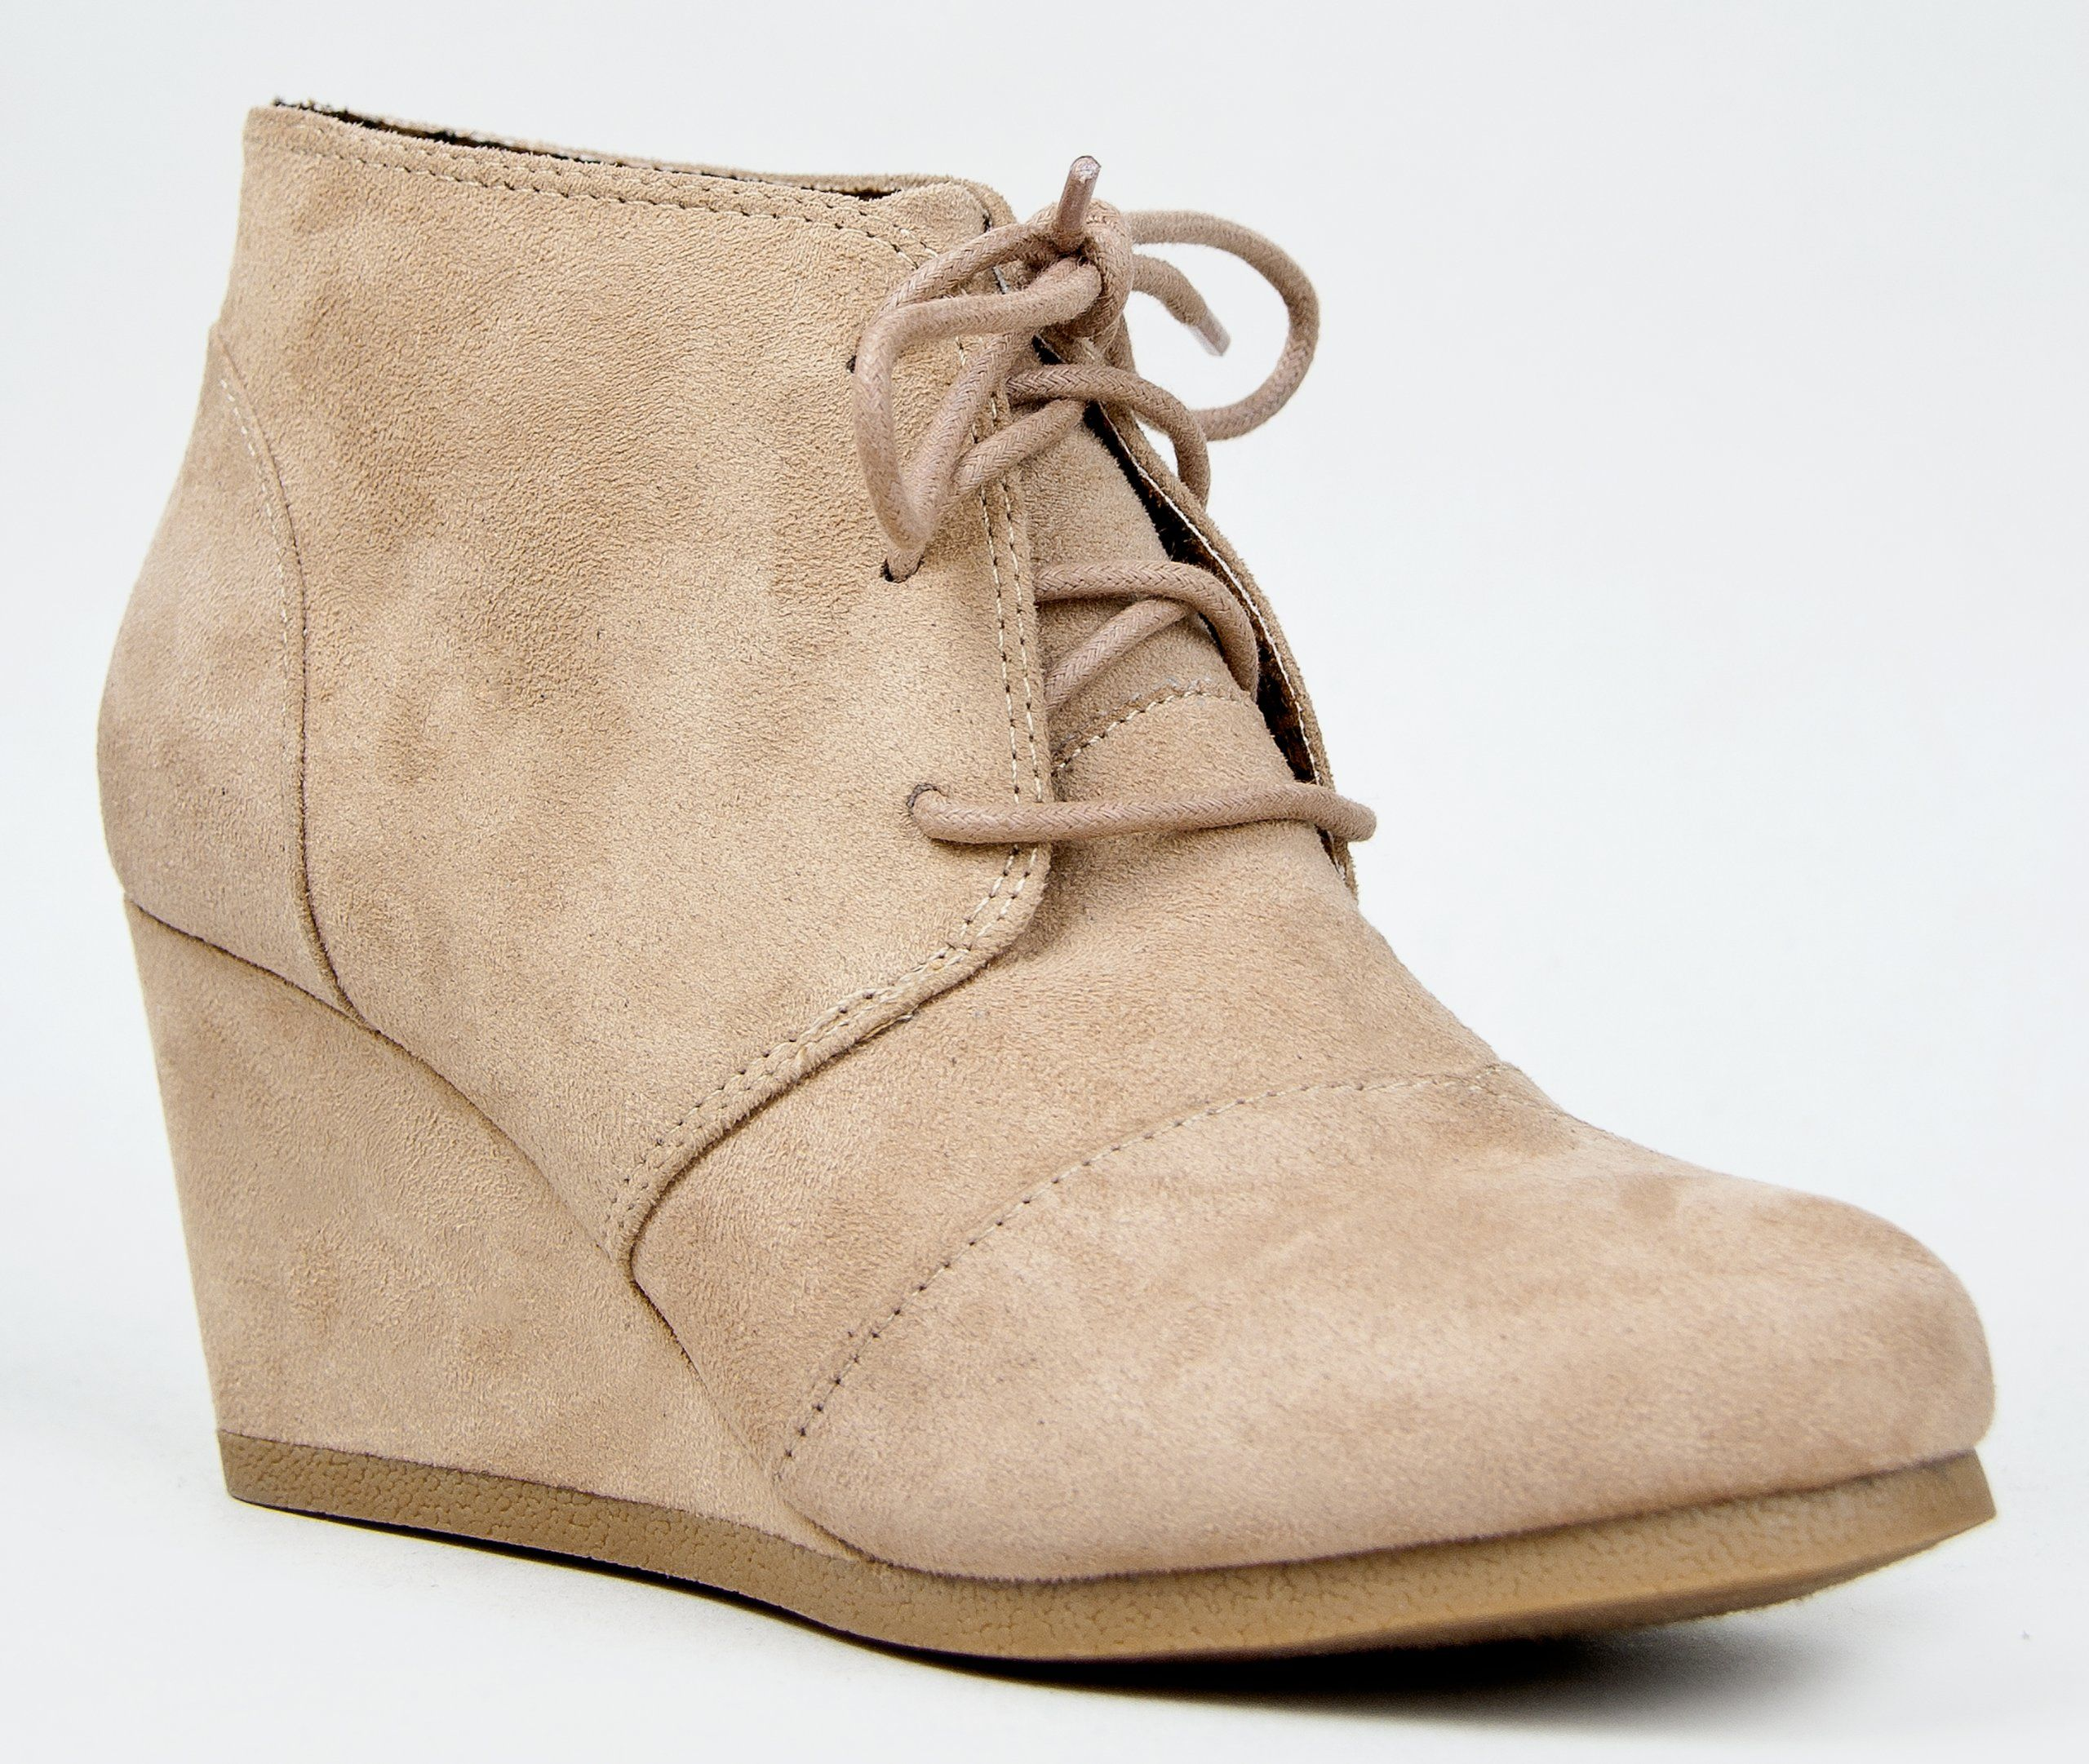 a9edded5040 Nature Breeze Willow-01 Women s Lace Up Faux Leather Ankle Wedge Boots  Color  Taupe Size  7  18.62  Pinned 09.19.14